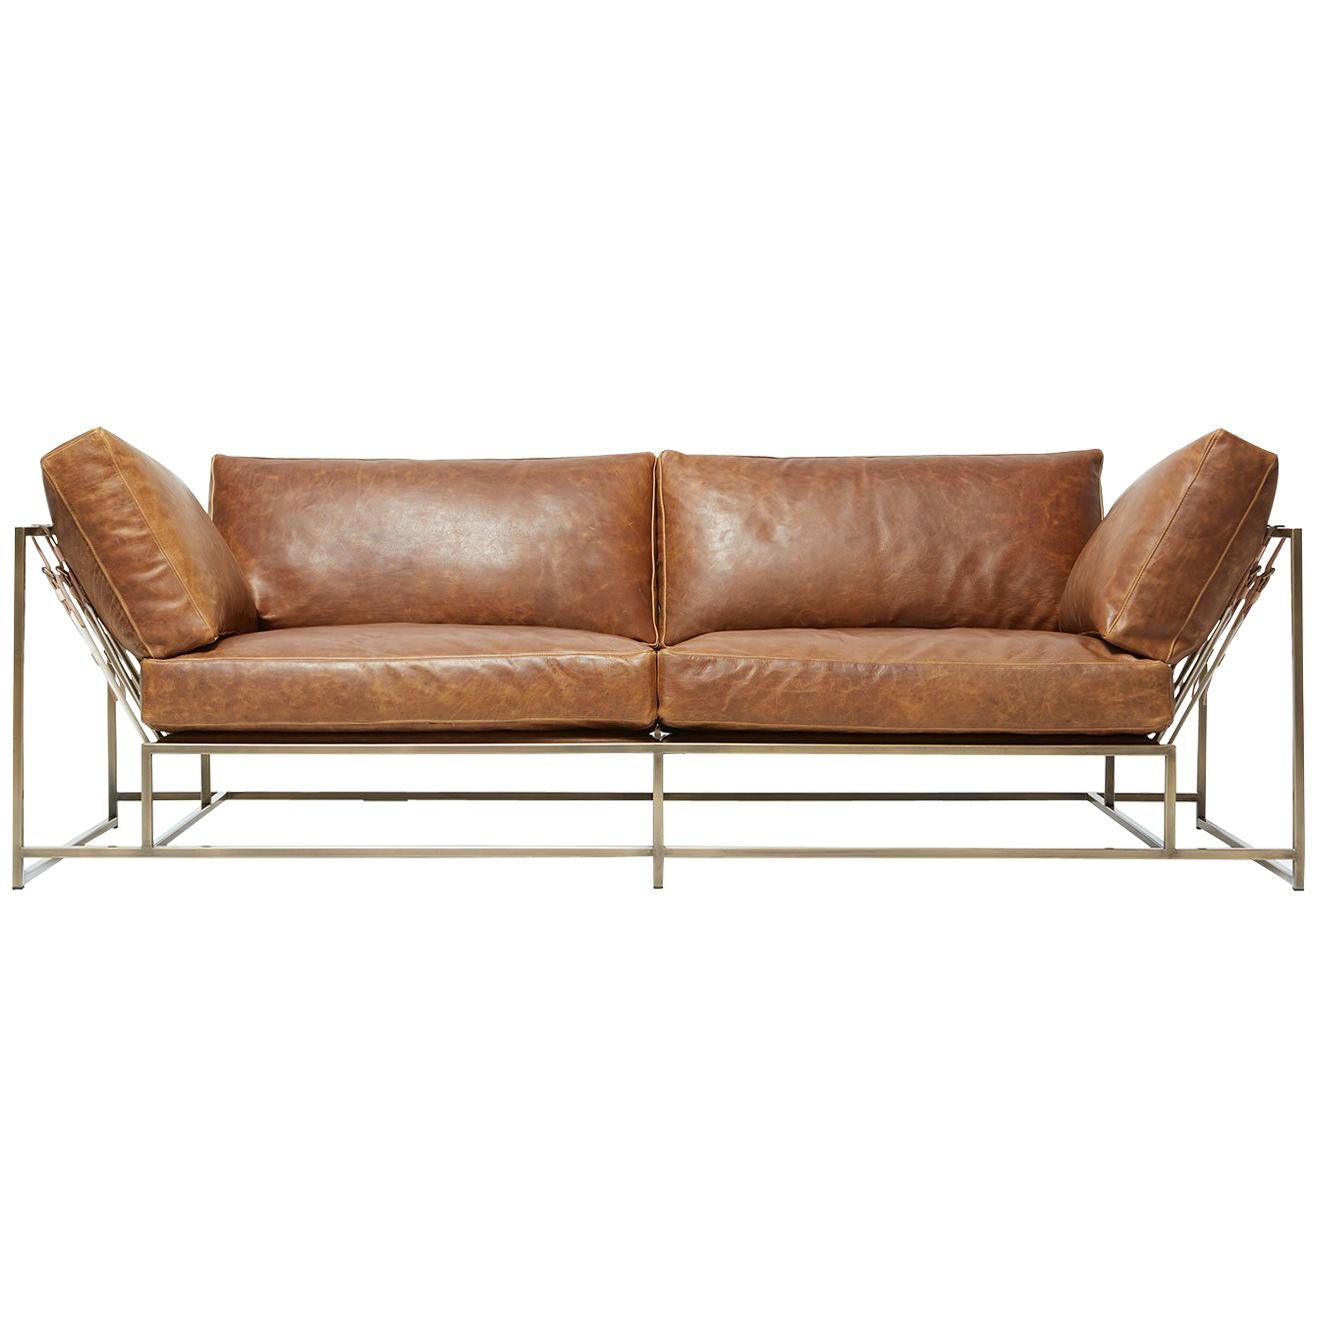 Tan Leather & Antique Brass Two Seat Sofa